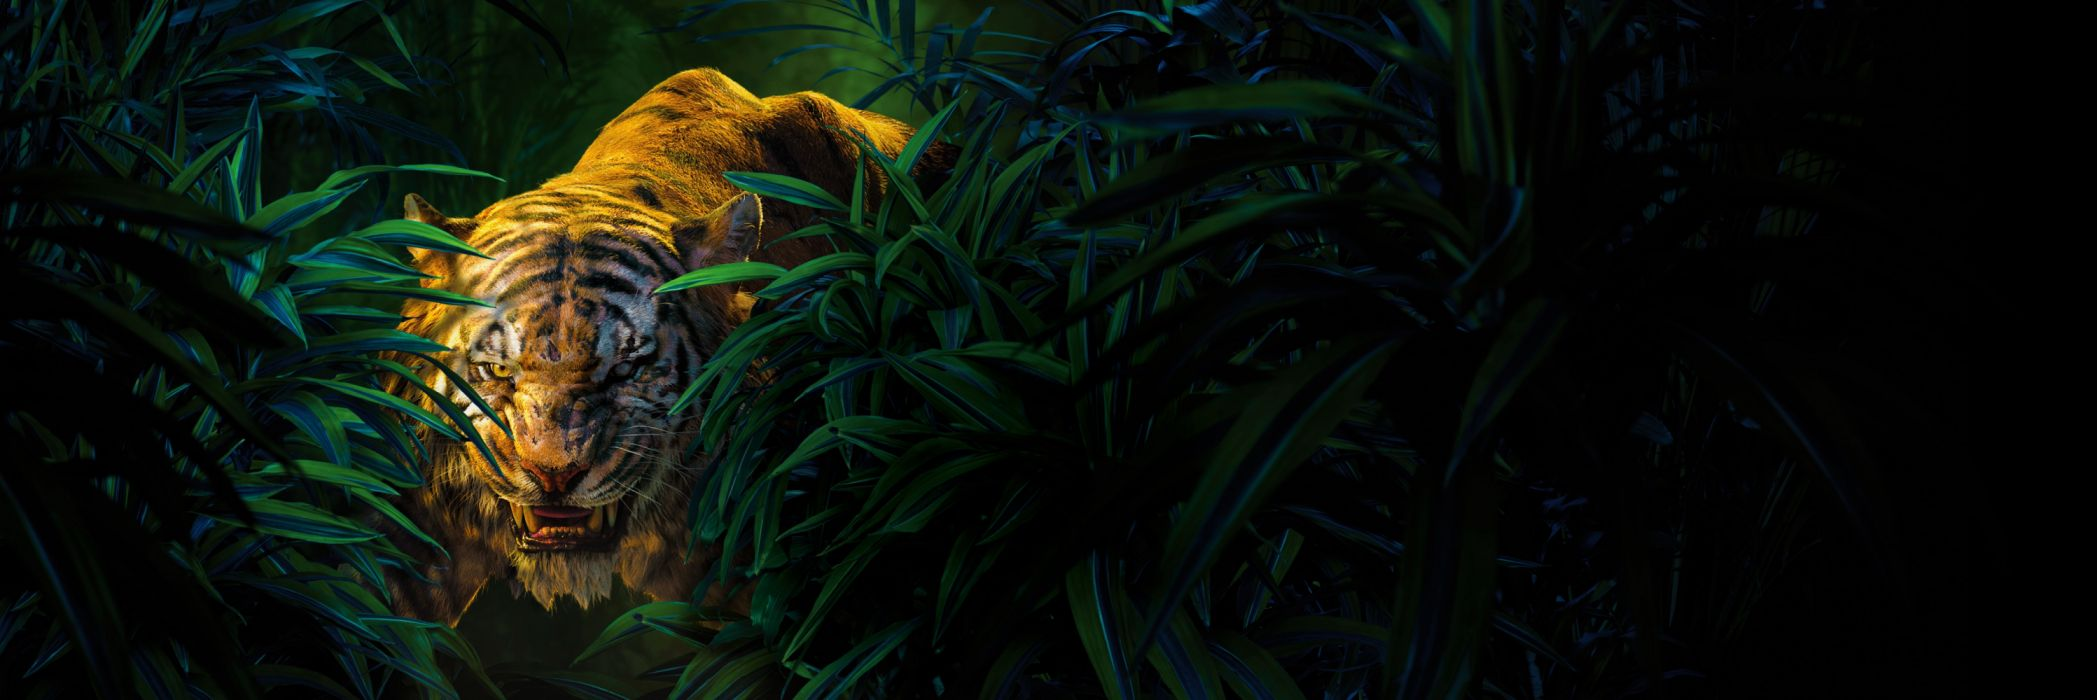 Animal Close-Up Green Leaf Movie Shere Khan The Jungle Book The Jungle Book (2016) Tiger wallpaper